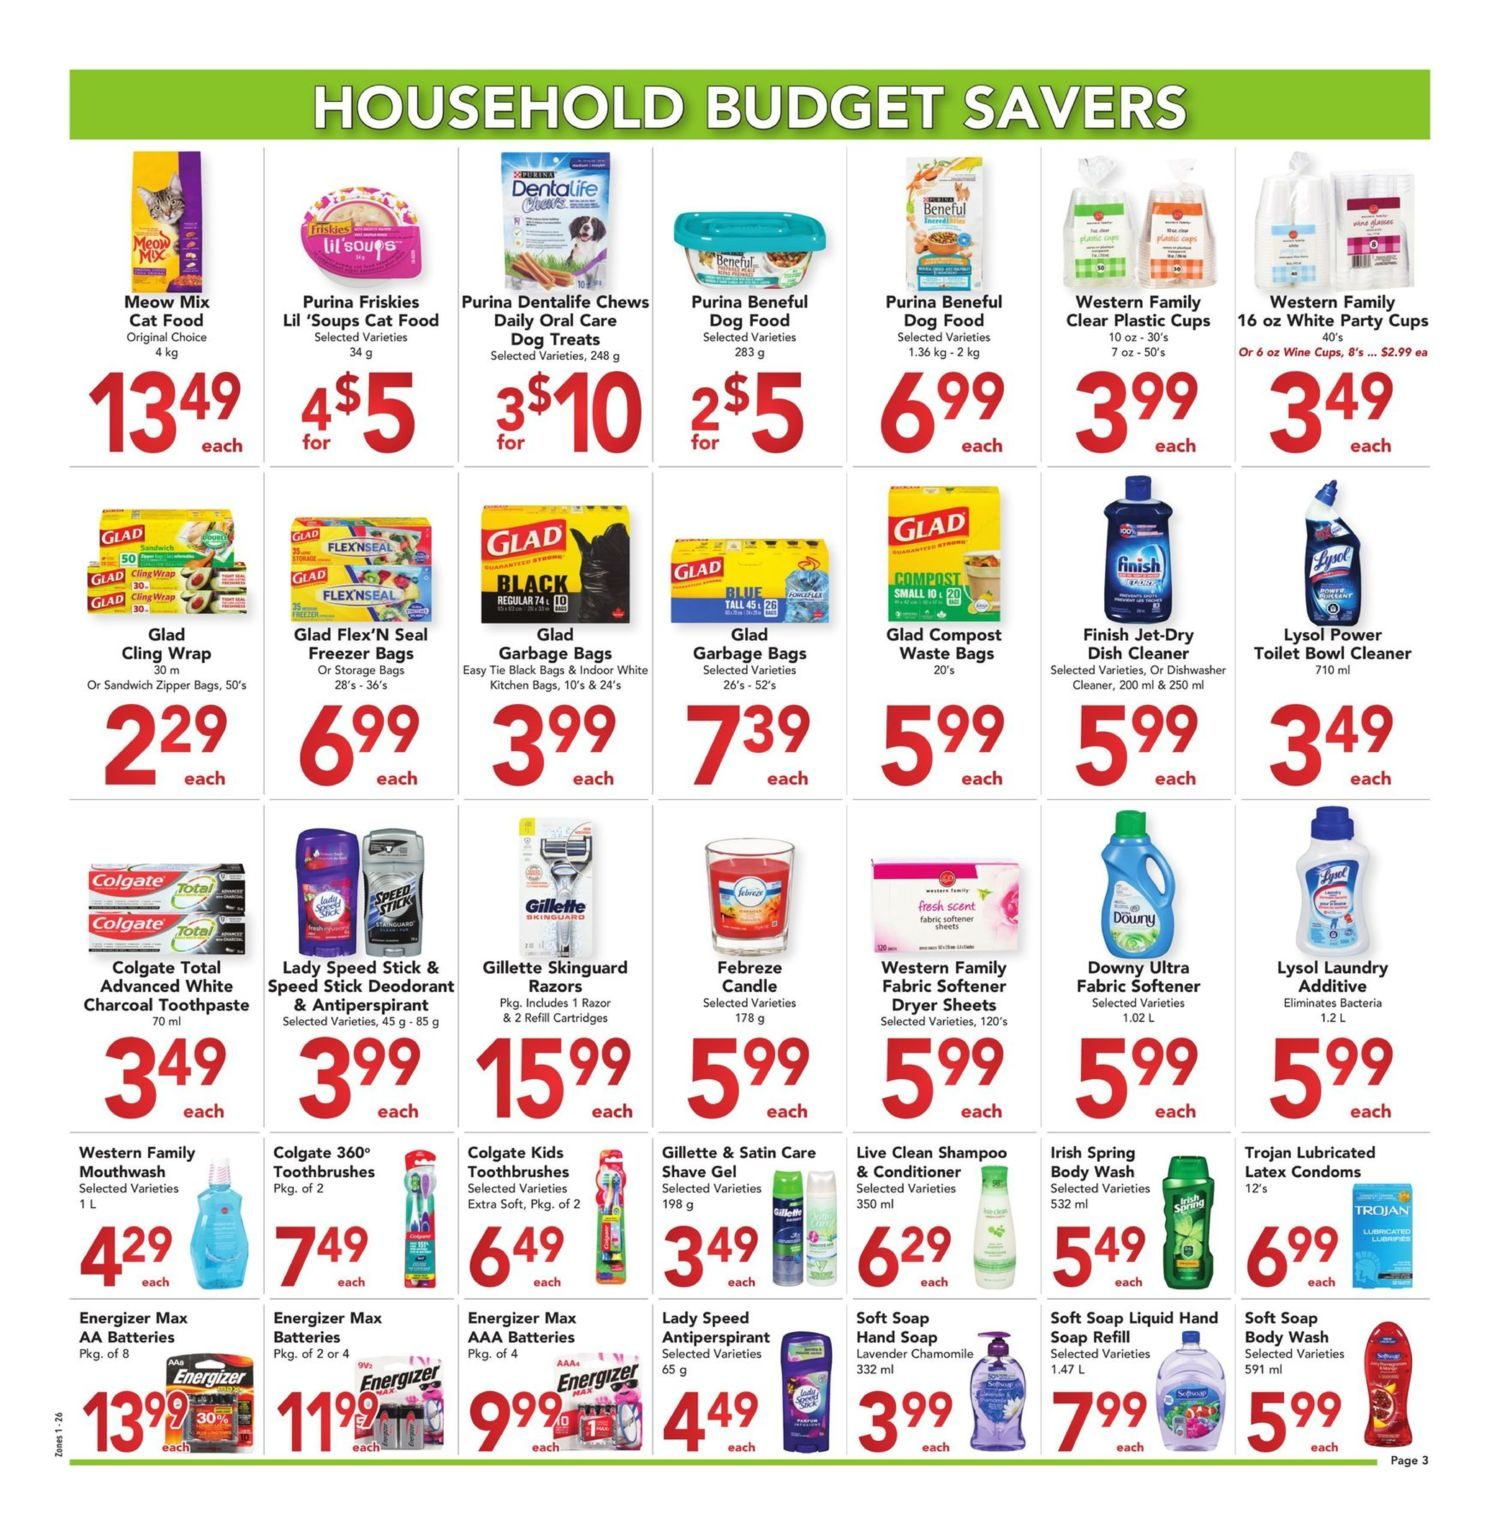 Buy-Low Foods - Budget Savers - Page 3